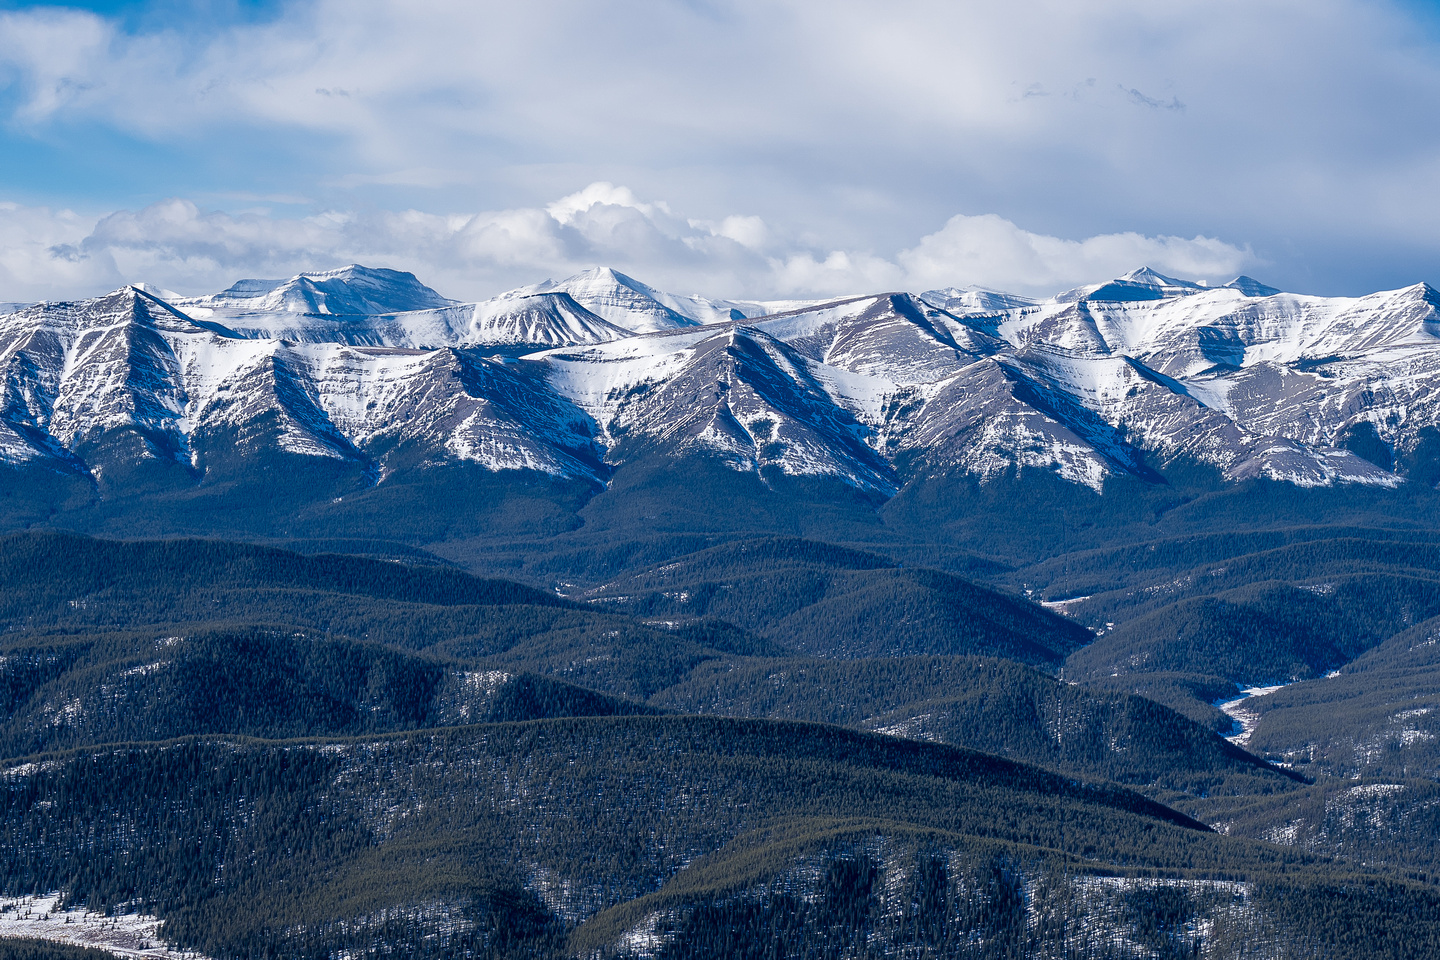 Wapiti Mountain looms in the distance over the lower front ranges.